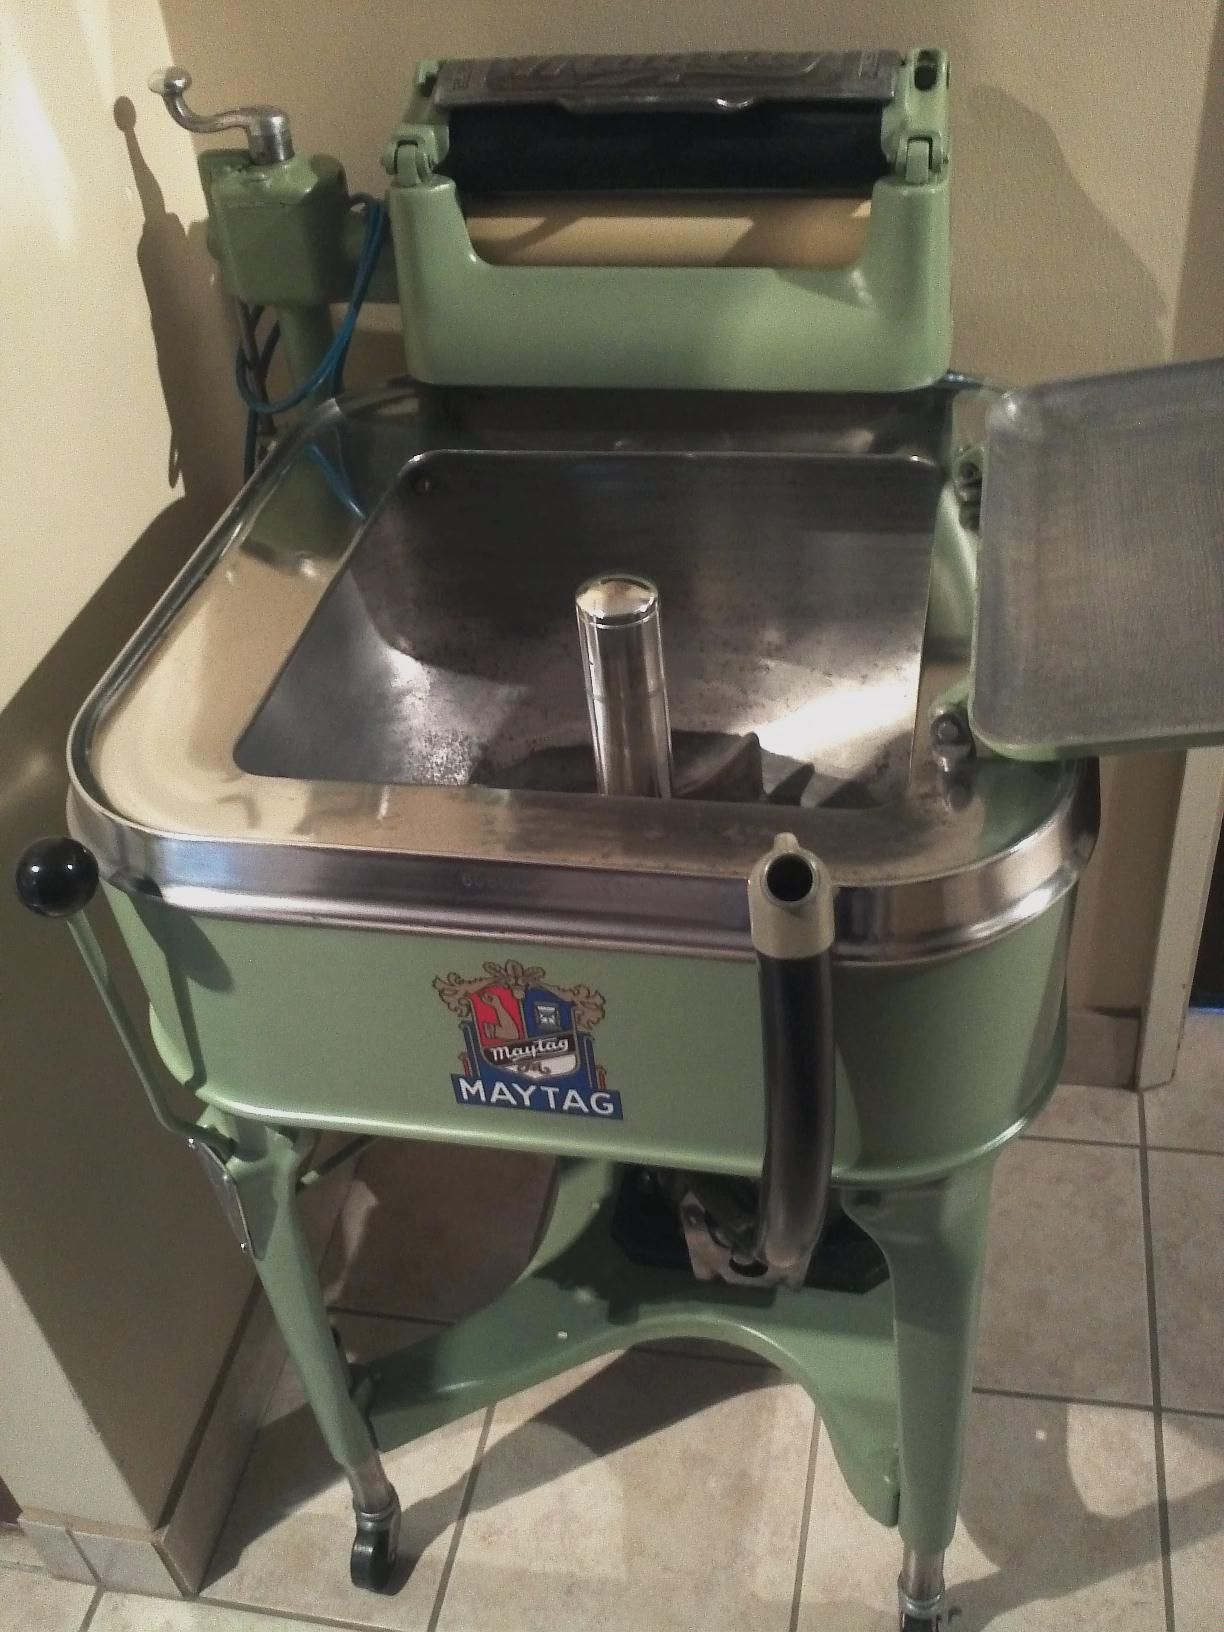 My Fully Restored 1935 Maytag Model 30 Wringer Washer